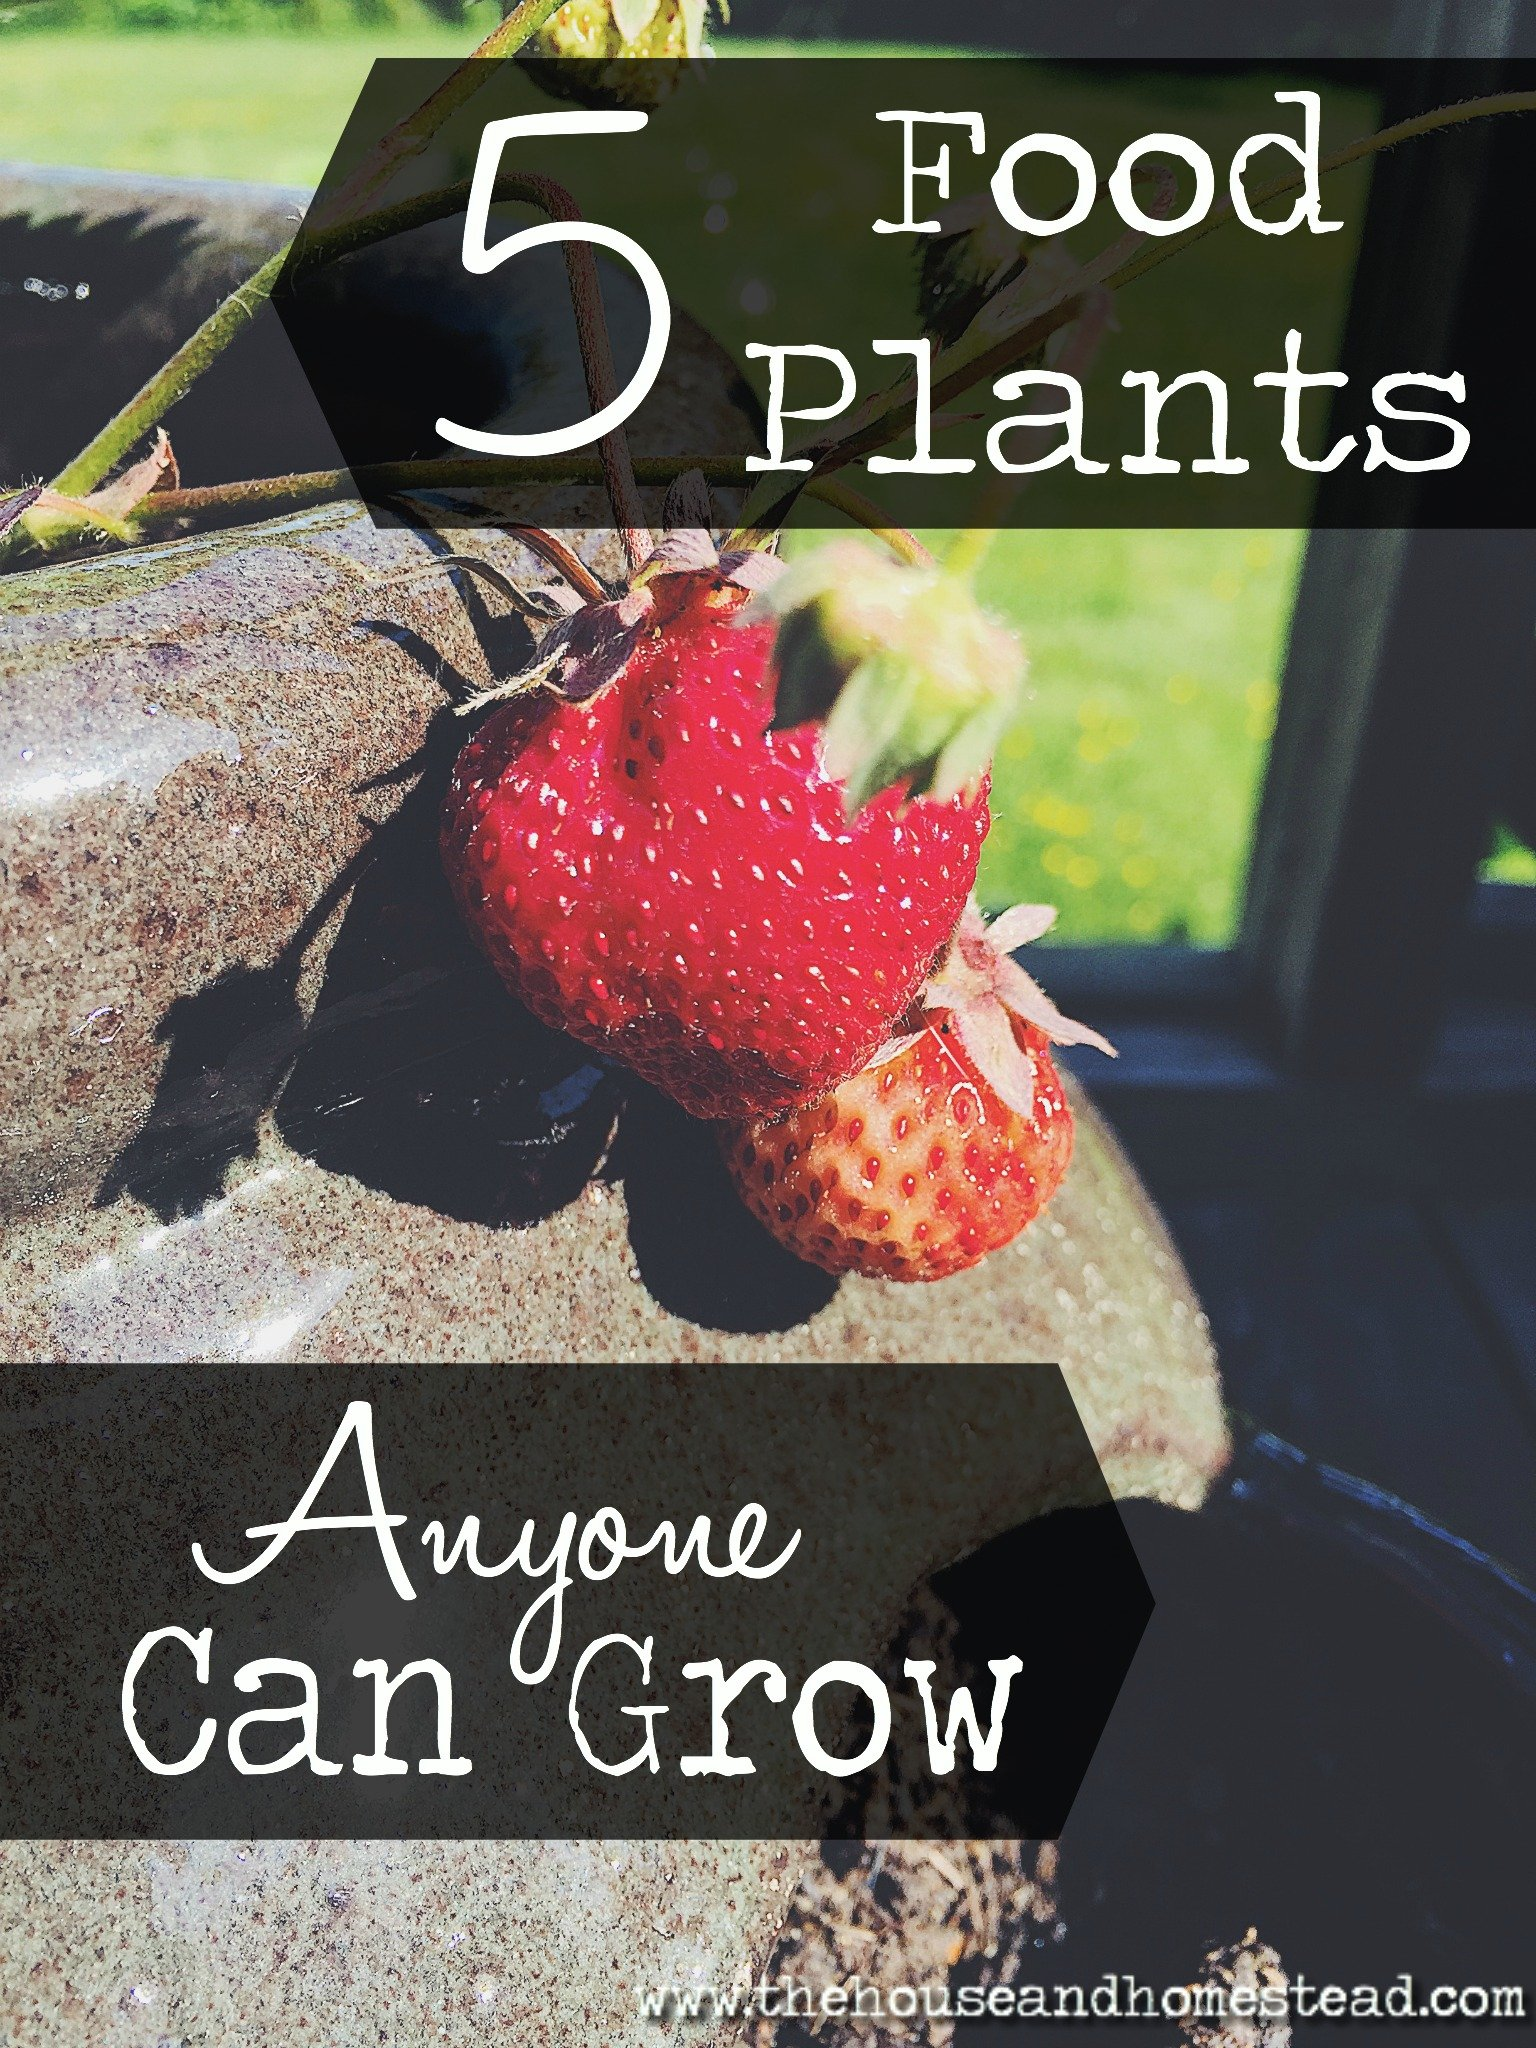 5 Food Plants Anyone Can Grow | Whether you're short on space or new to gardening, start with these no-fuss fruits and veggies to get you growing (and eating) from your own deck, balcony or backyard.